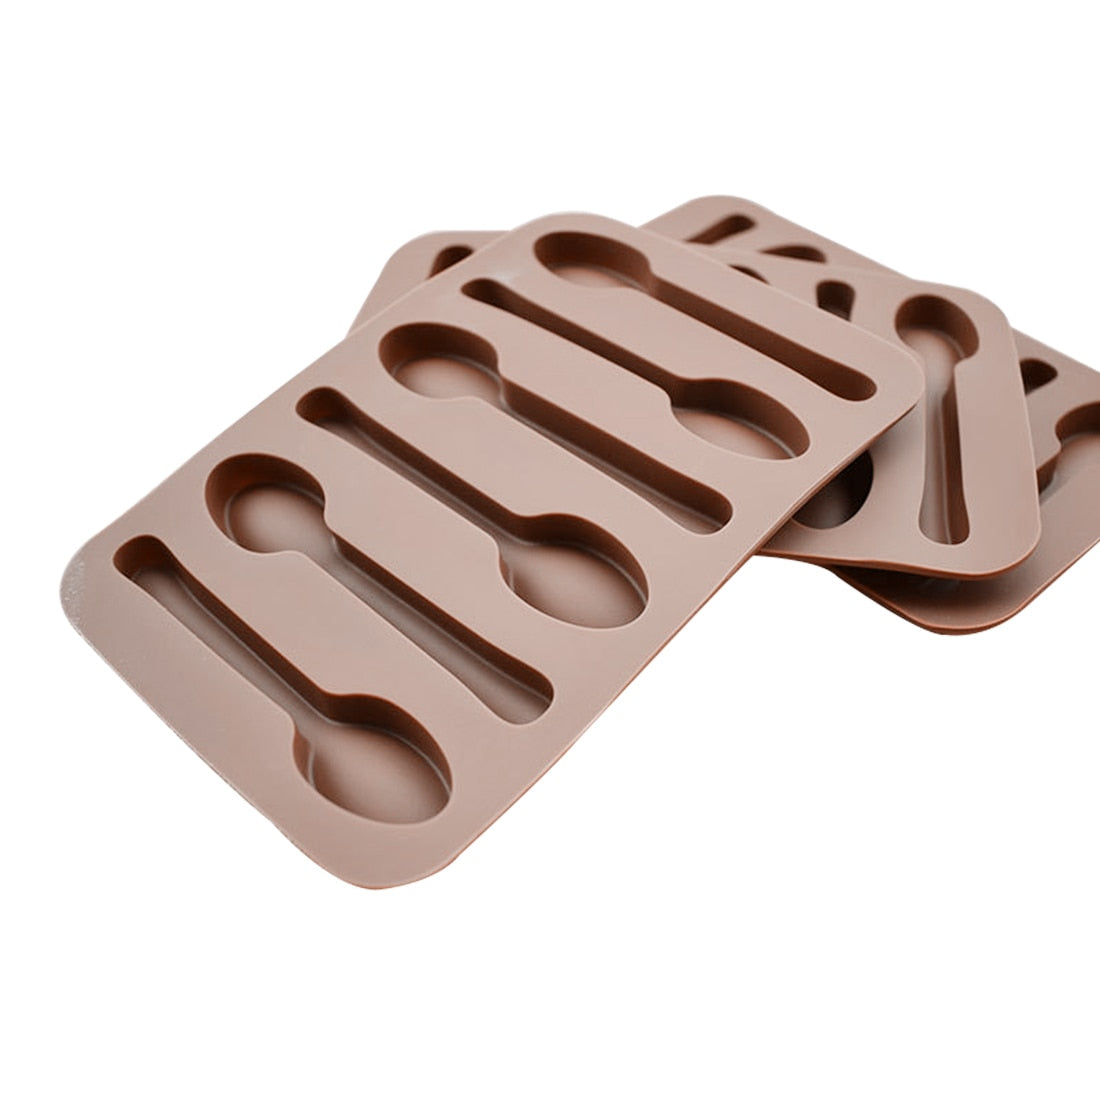 Spoon Shape Silicone Mold - Golly Ideal Shop